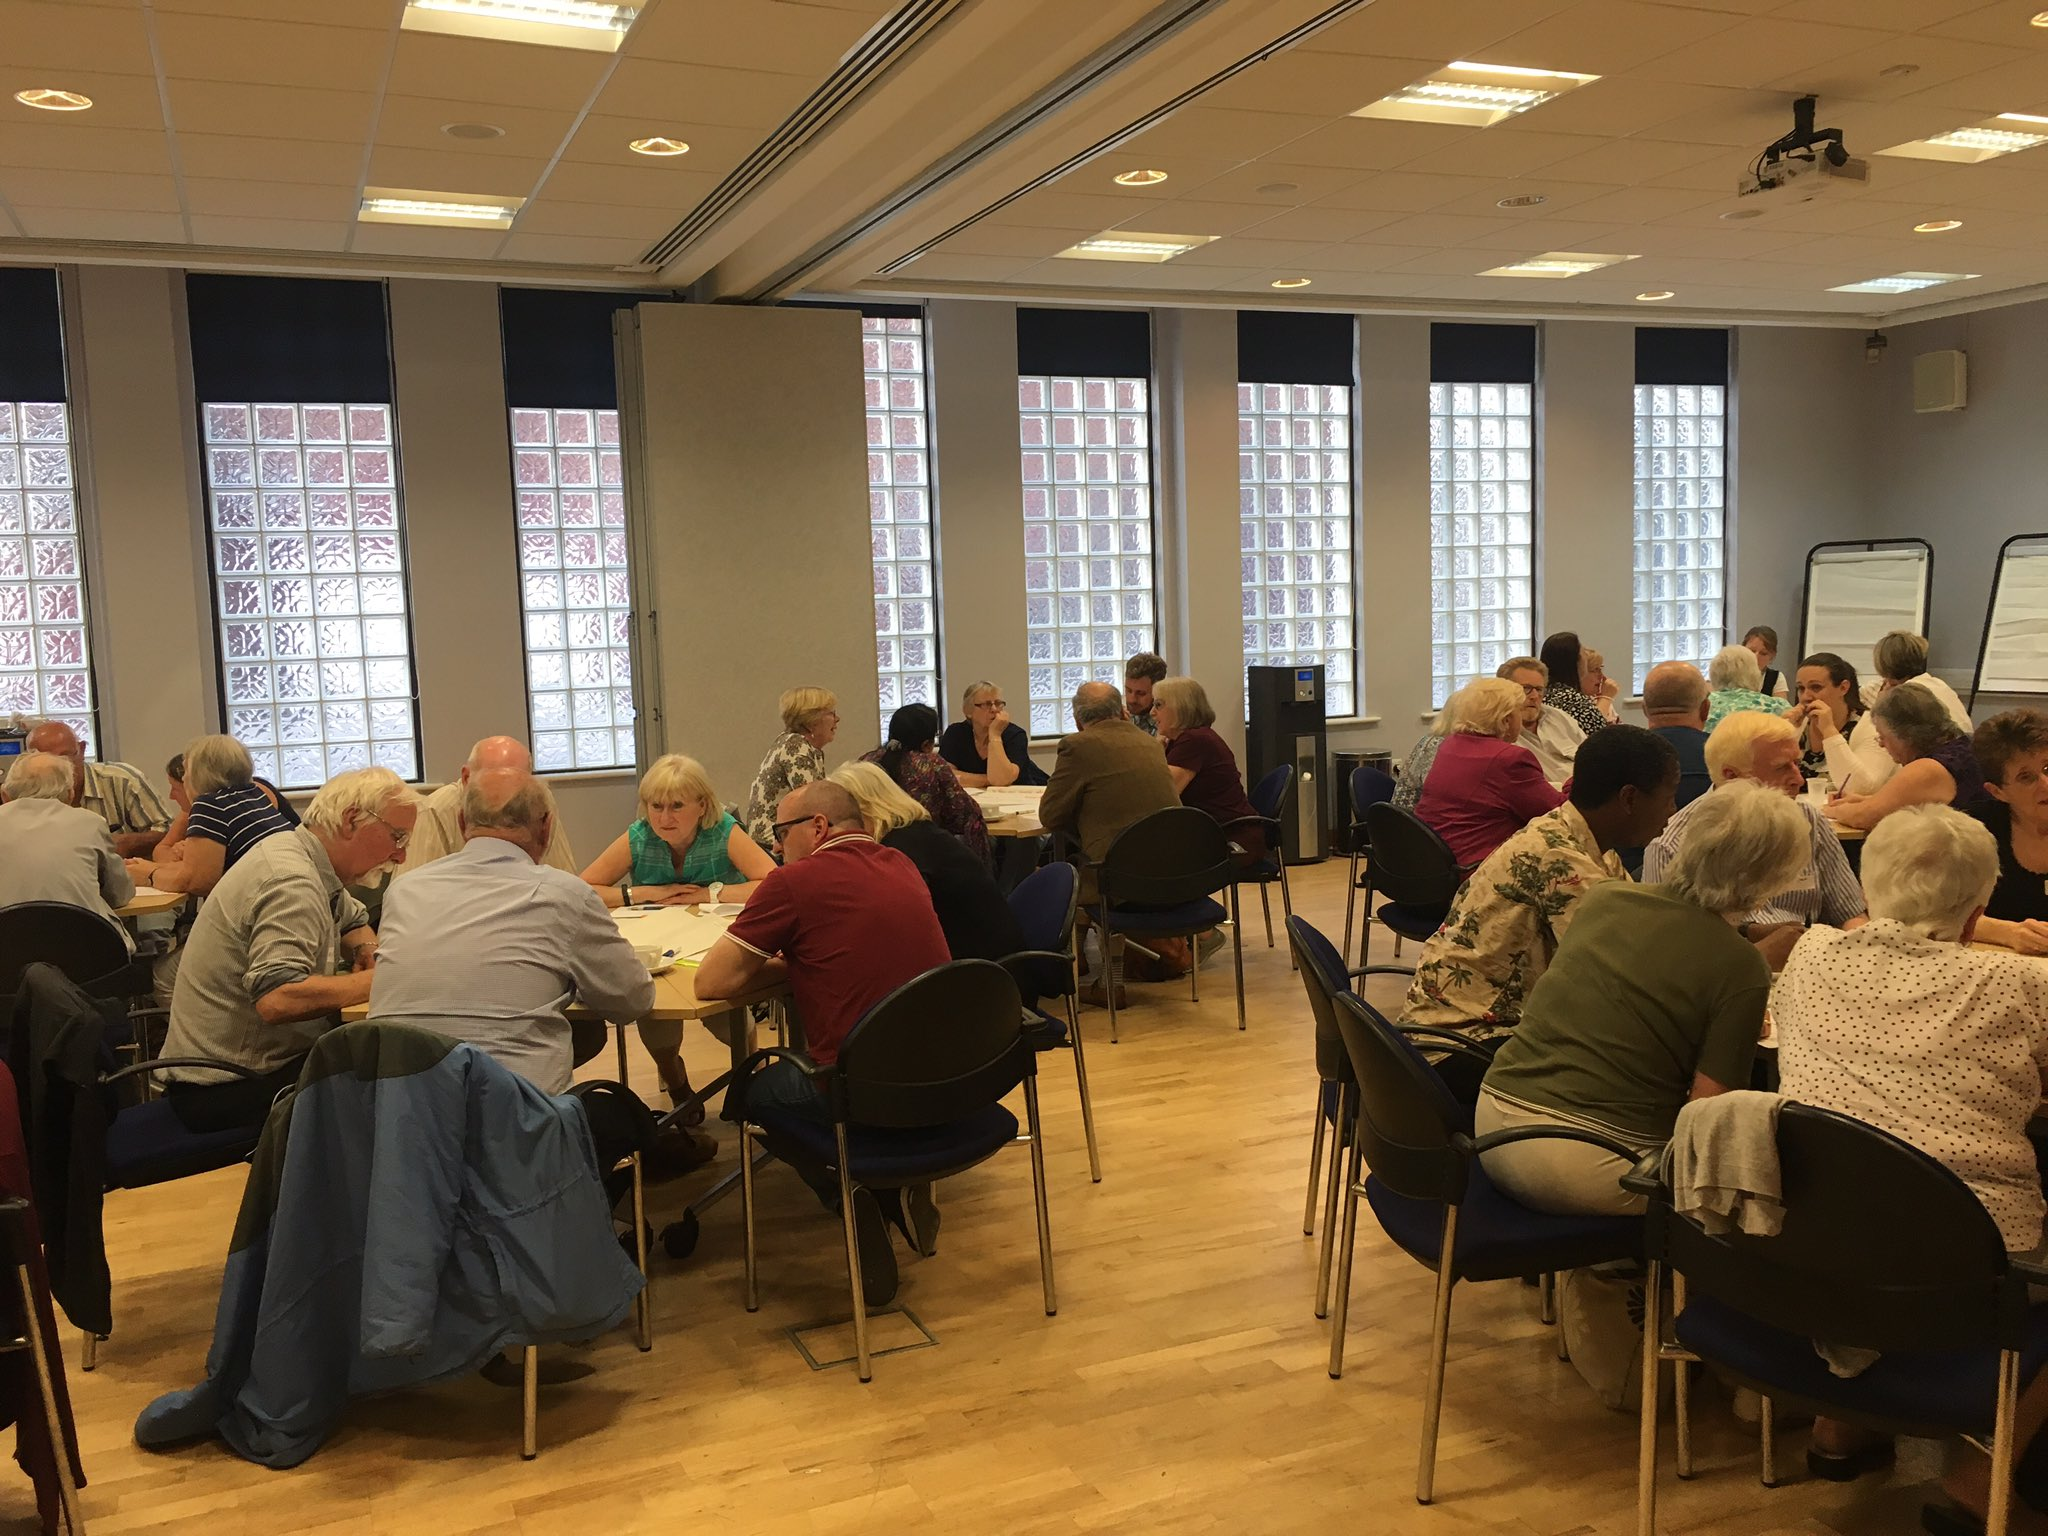 It's great to see so many people at the Patient Participation Group meeting #PPGsheffield https://t.co/9gx8xaOXQg